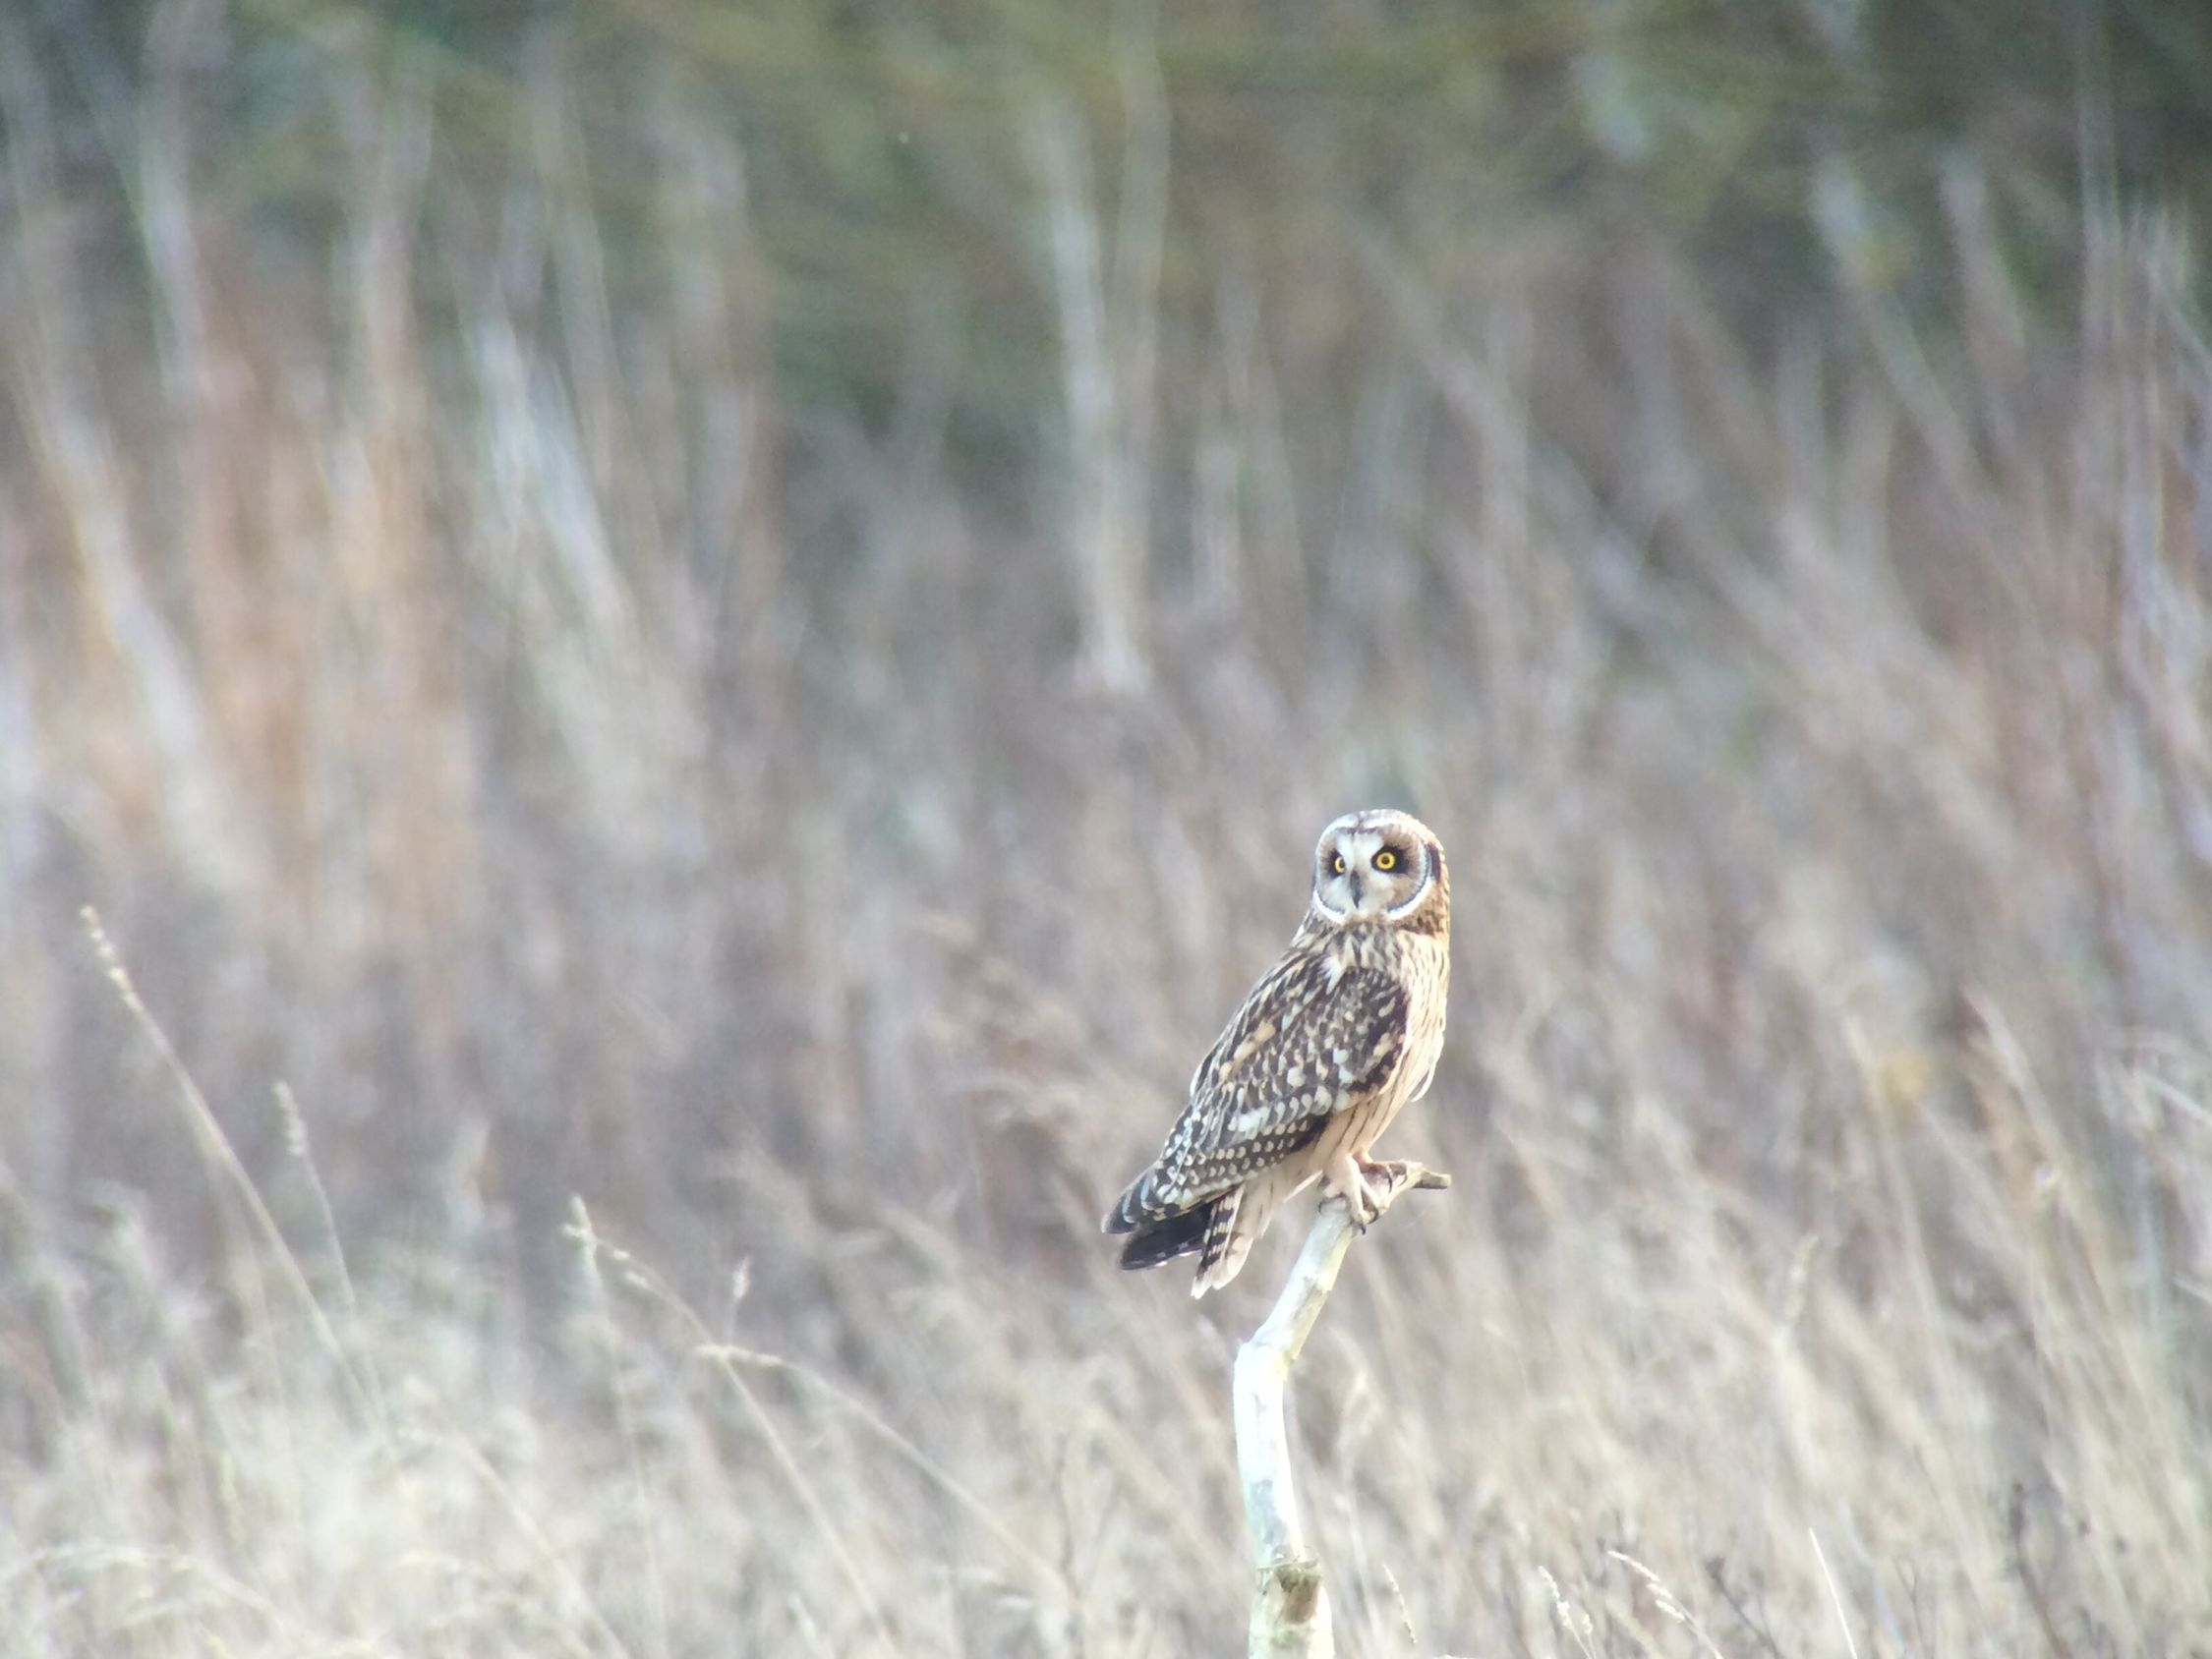 Short-eared Owl at Lunt Meadows LWT reserve, digiscoped with an iPhone 5S, Swarovski ATX85 scope & PA-i5 adaptor. IPhone 5S Swarovski ATX85 IPS2016Nature Swarovski Optiks